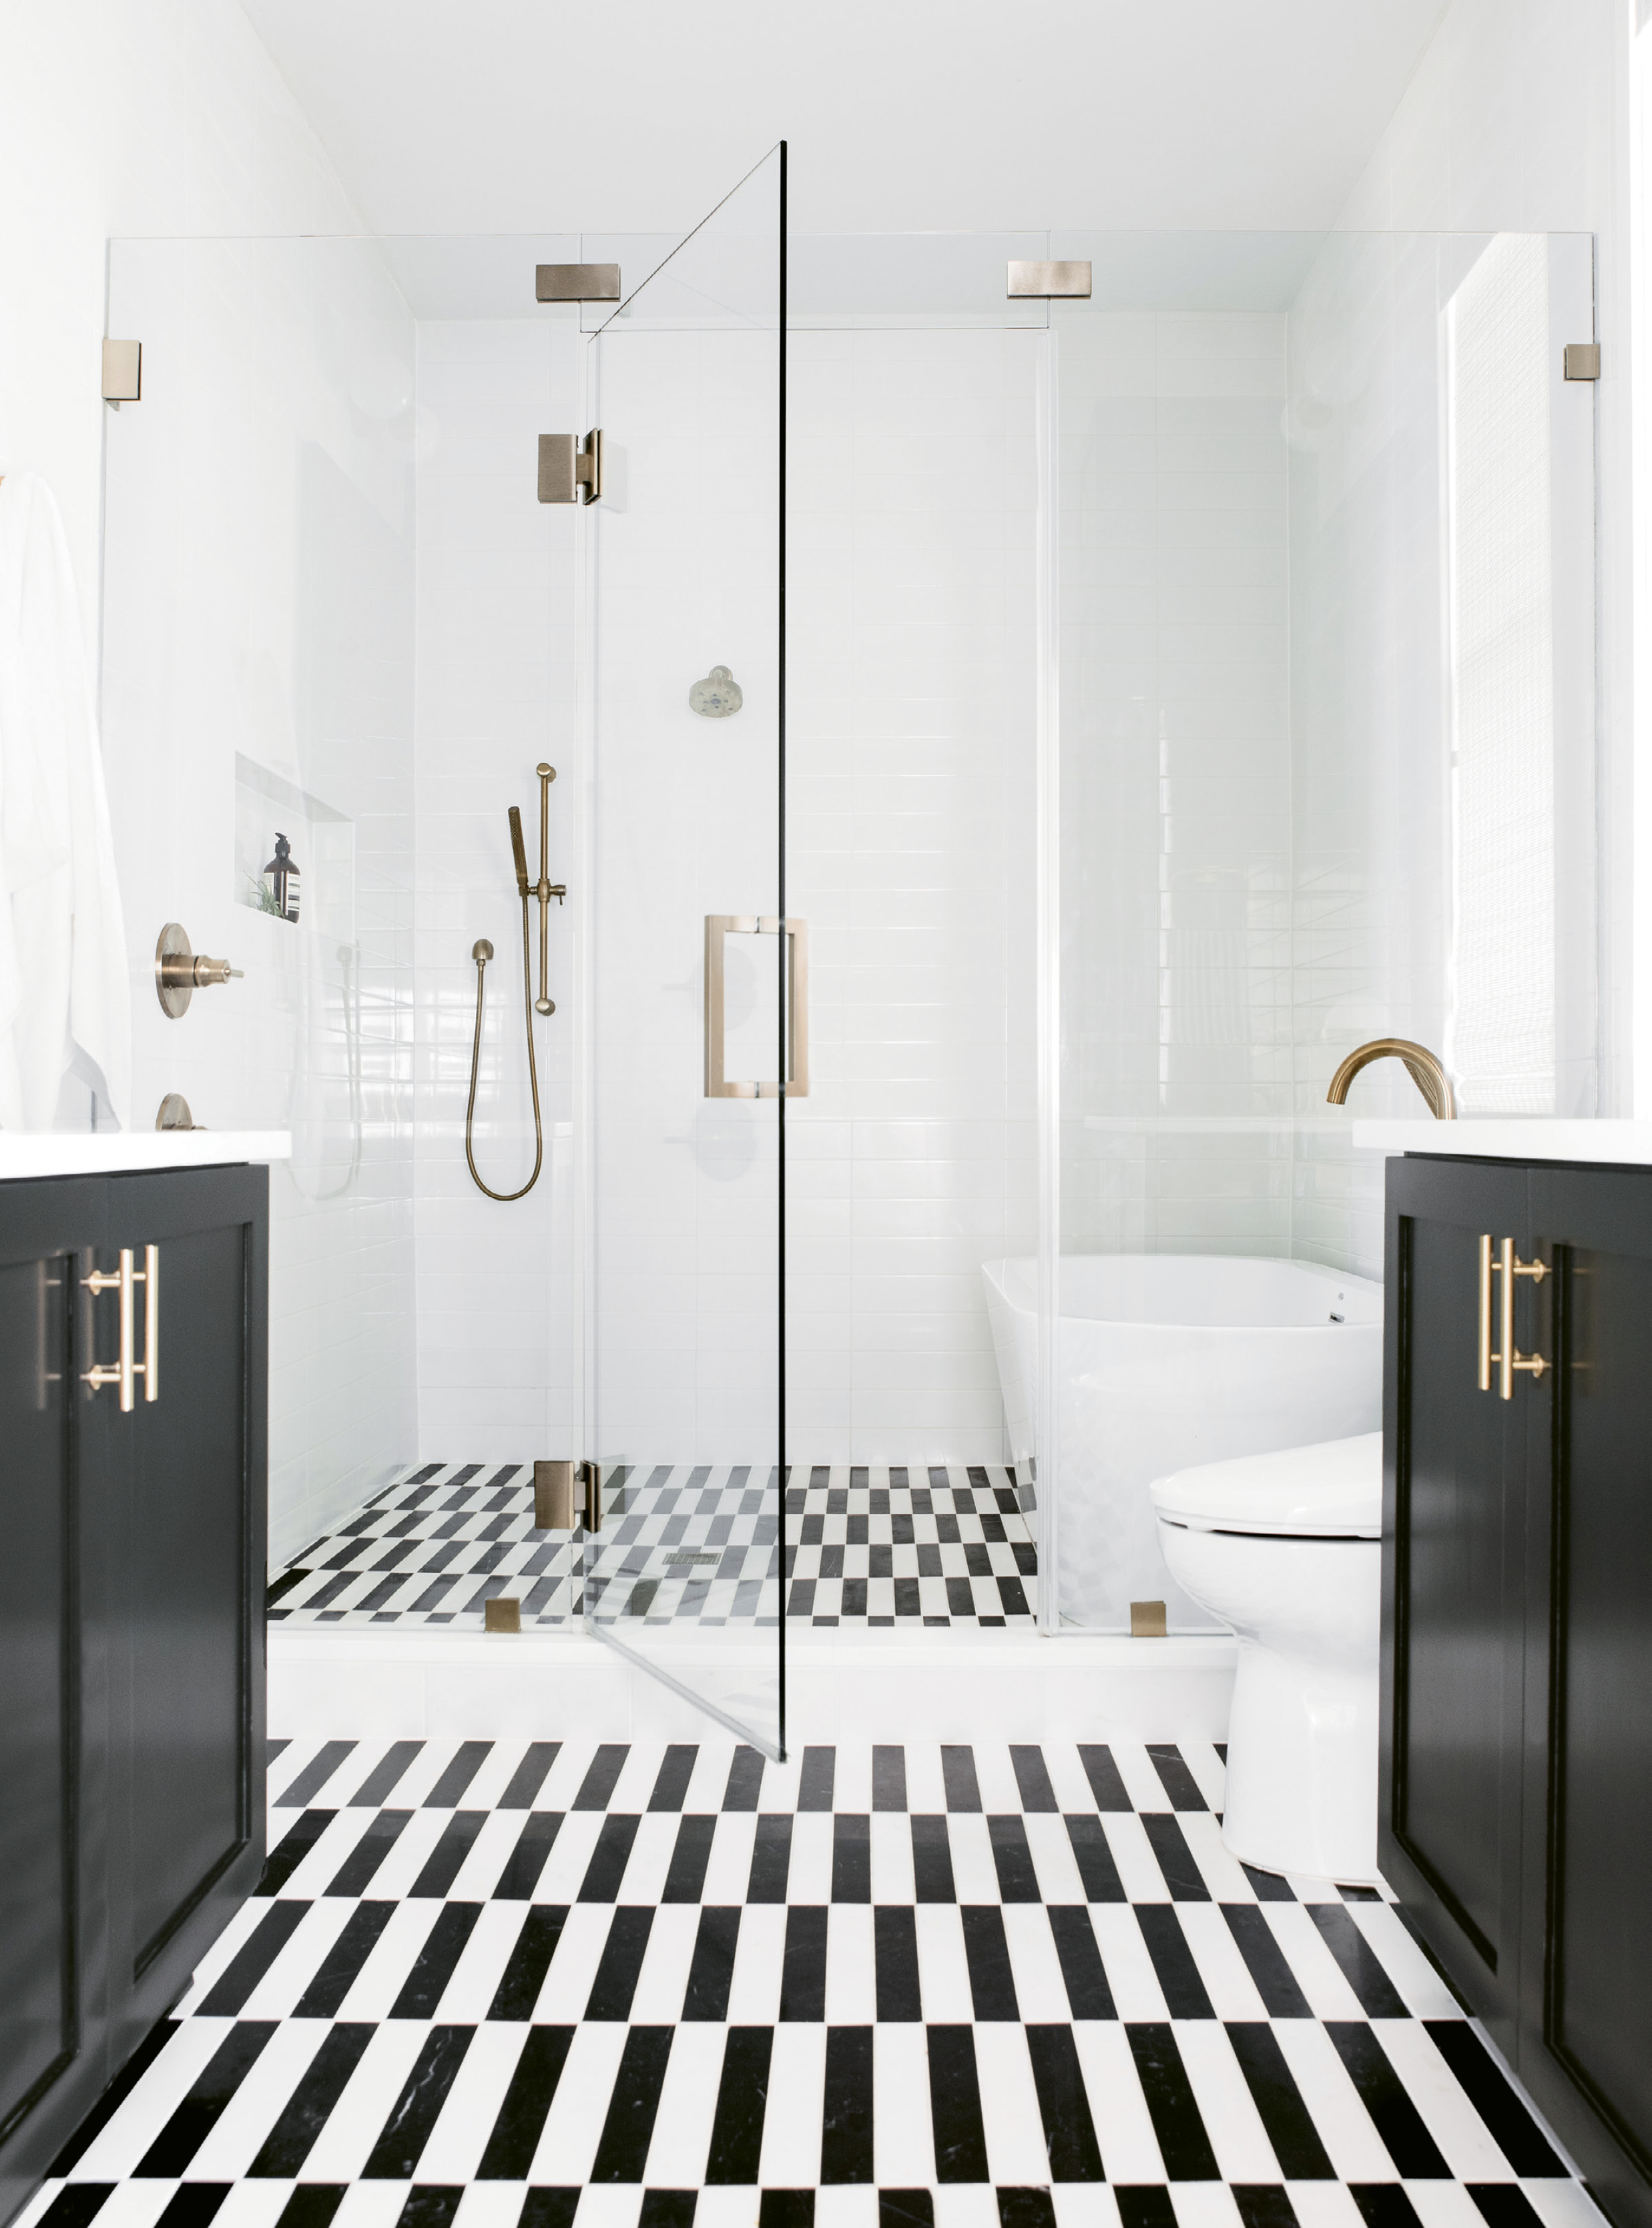 """CLEAN & SERENE: The master suite rivals boutique hotels for its comfort and style. A space-saving """"wet room"""" configuration in the bath fits a walk-in shower and soaking tub, while glistening white-tile walls, cabinets covered in Benjamin Moore's """"Black Beauty,"""" and a custom-cut marble tile floor add drama."""